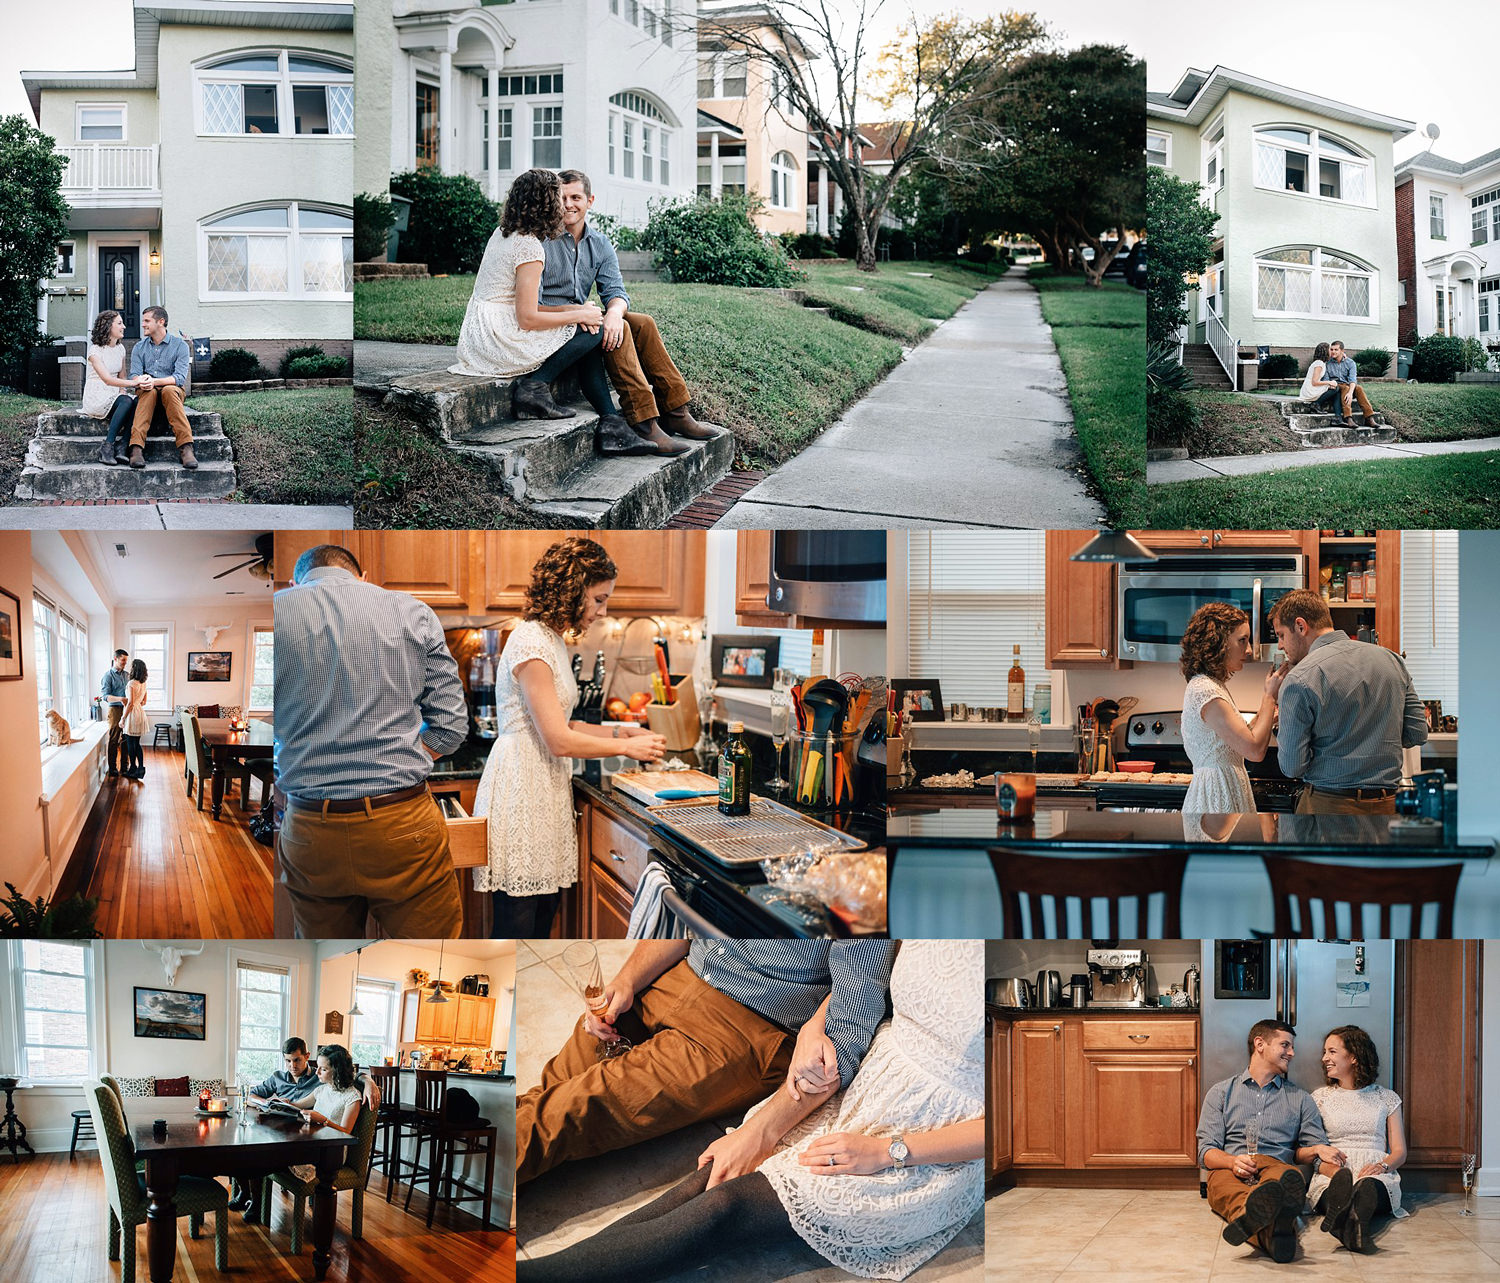 norfolk-engagement-photographer-ghent-engagement-photos-at-home-documentary-session-melissa-bliss-photography.jpg